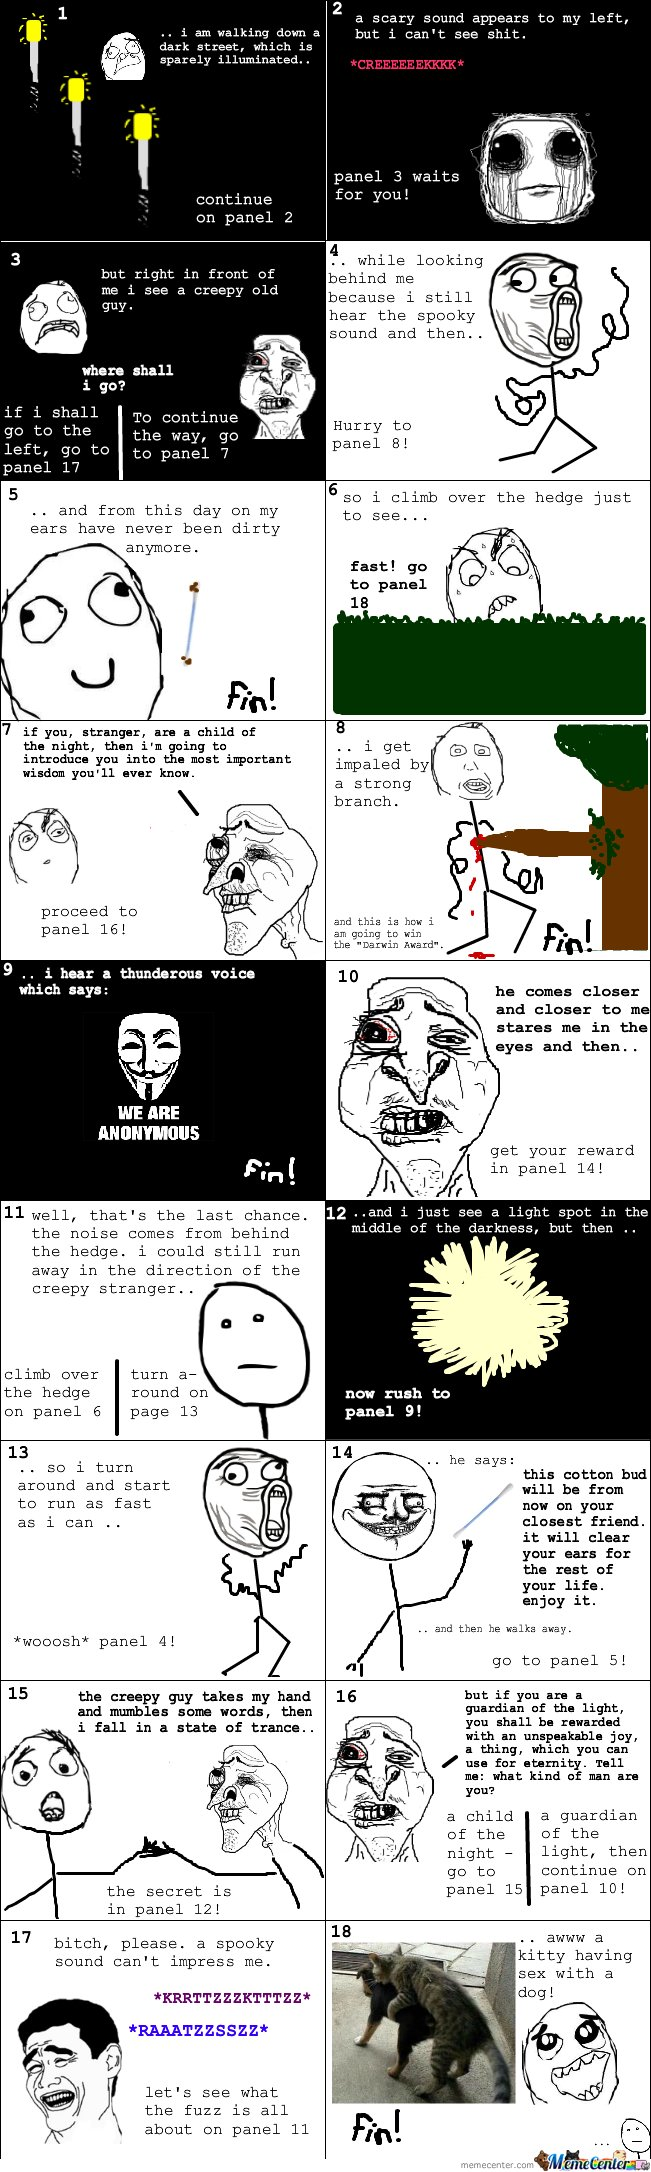 Interactive Rage Comic!